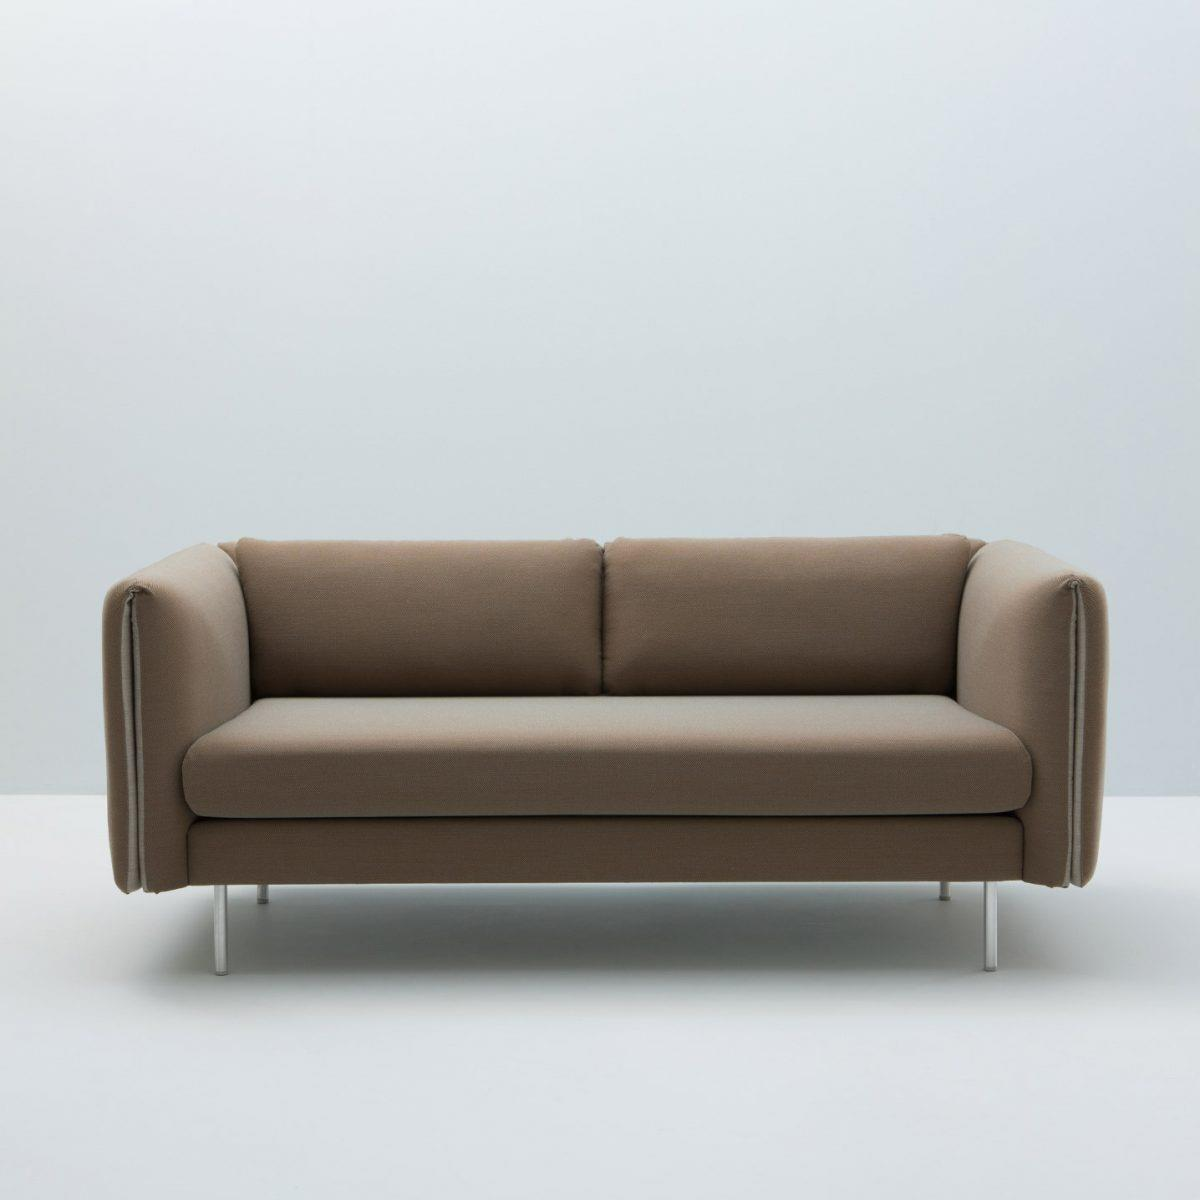 DUO Sofa. Aluminiumsben. Innetekstil: Gr.3. Yttertekstil: Gr.3